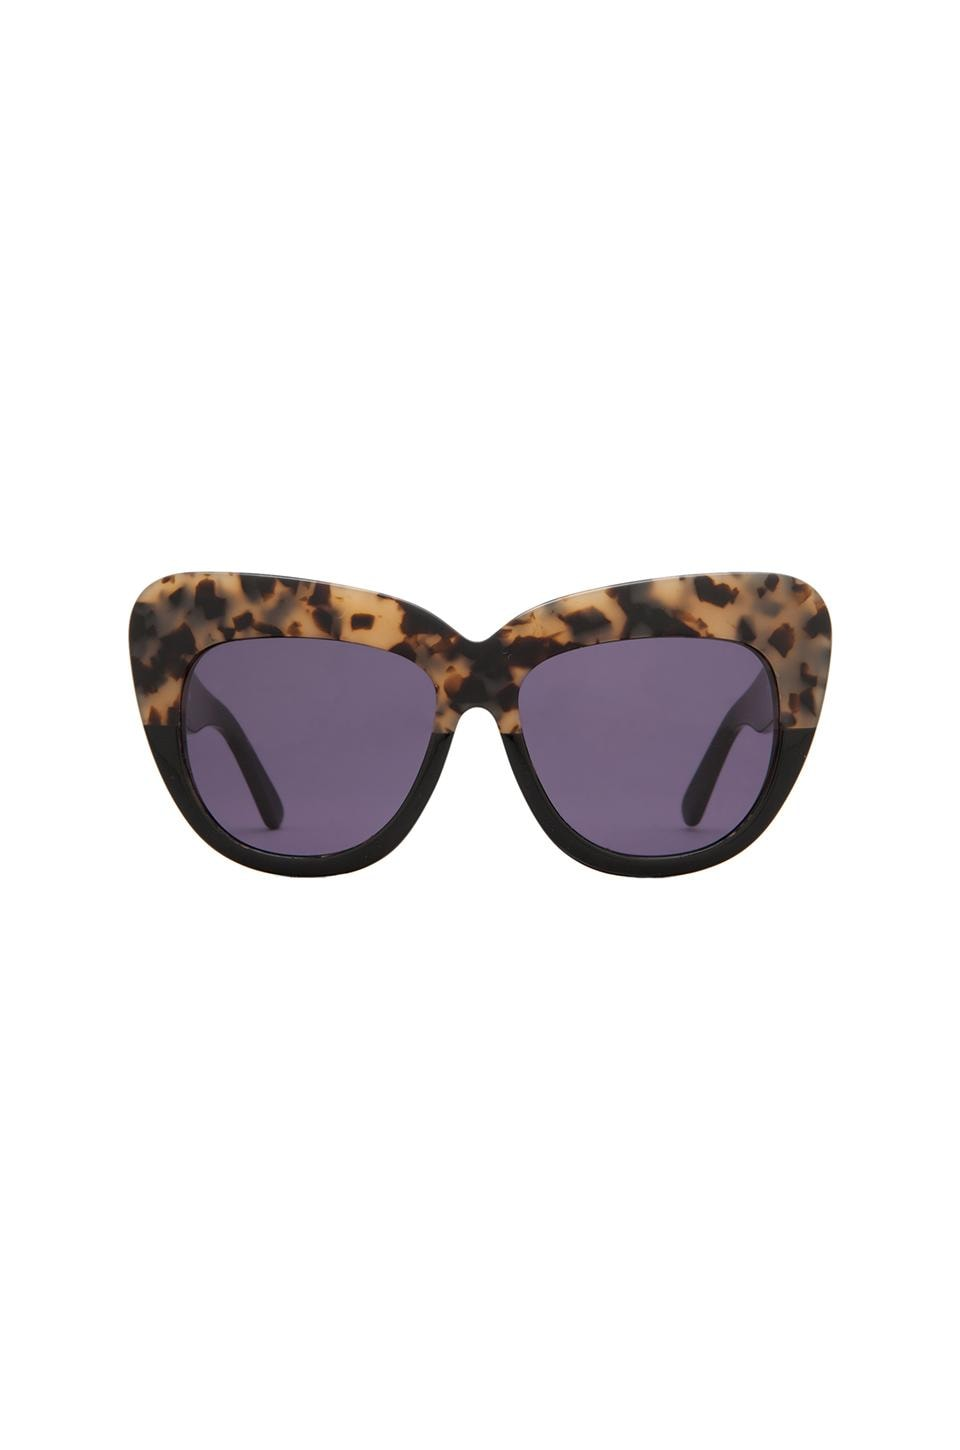 House of Harlow 1960 House of Harlow Chelsea Sunglasses in Black Oreo